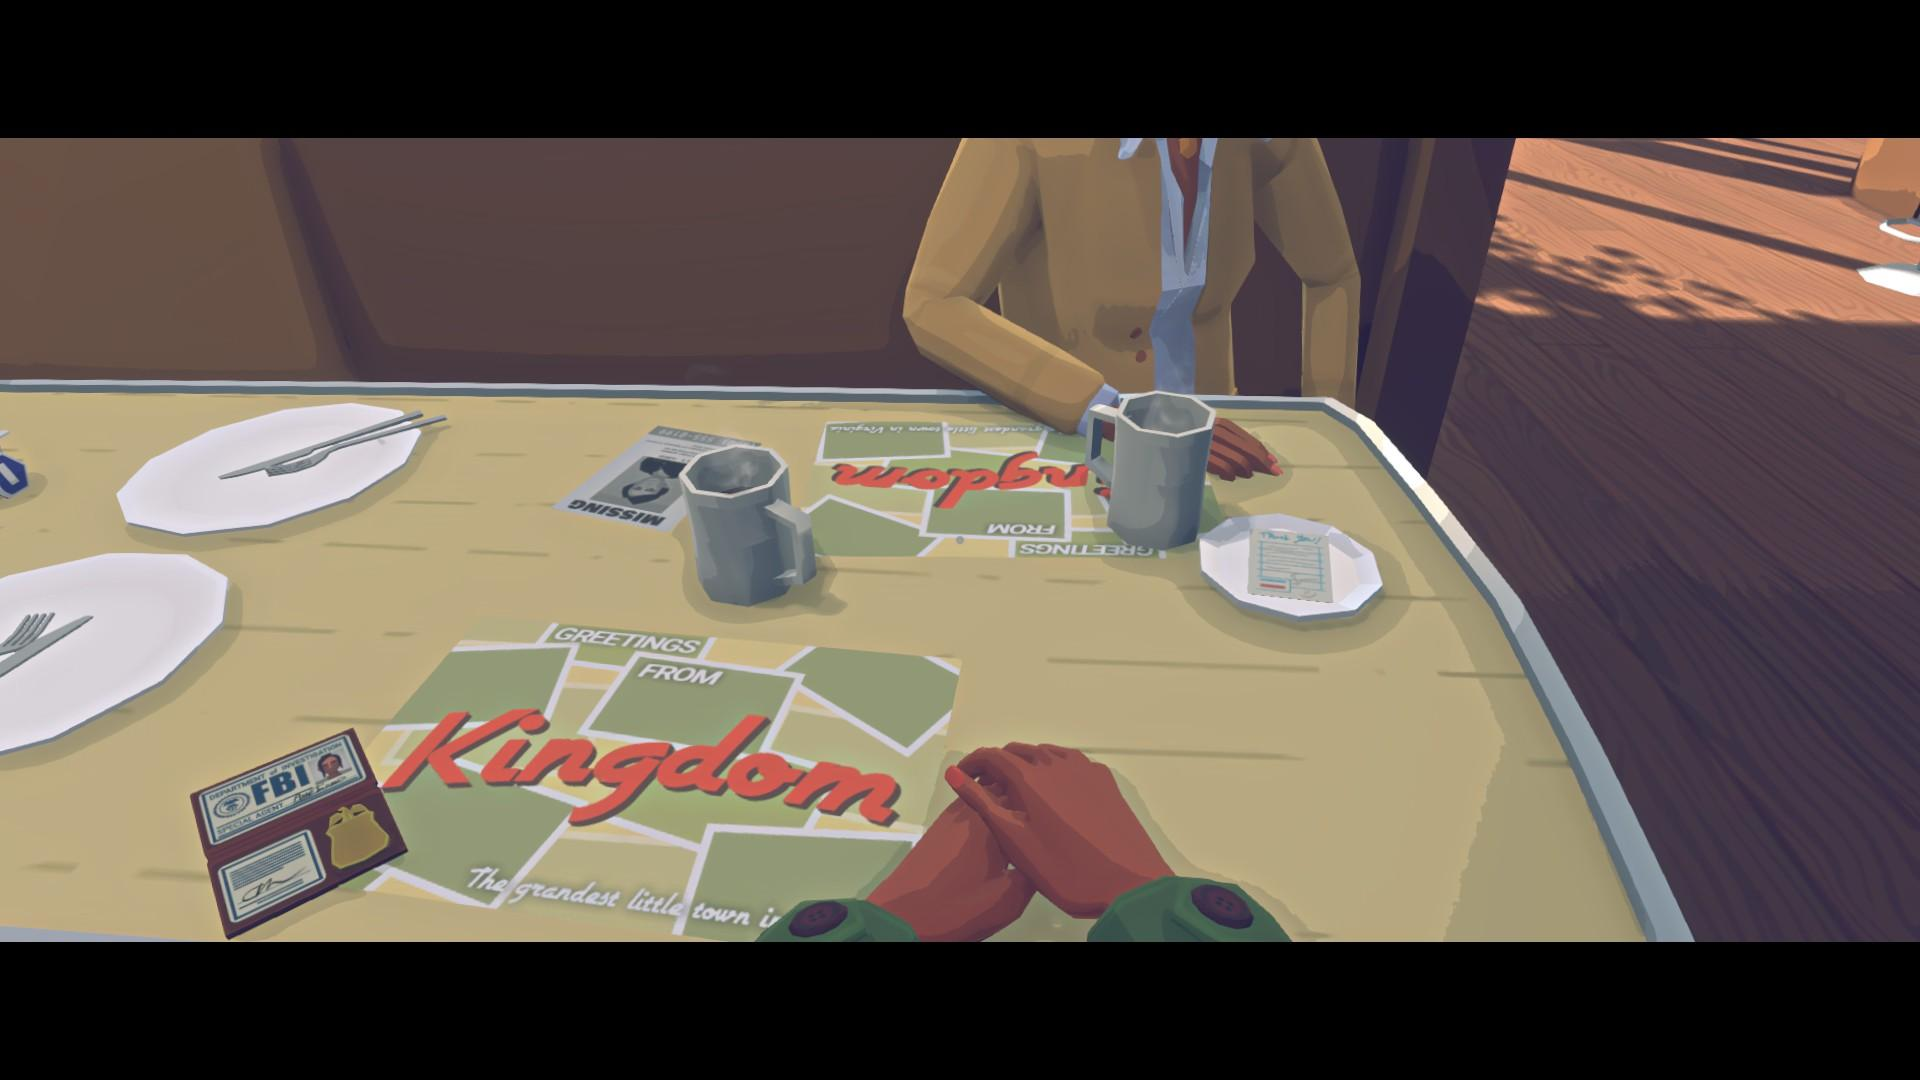 FBI agents Anne Tarver and Maria Halperin enjoy coffee in silence at a small-town diner in developer Variable State's debut game, Virginia.